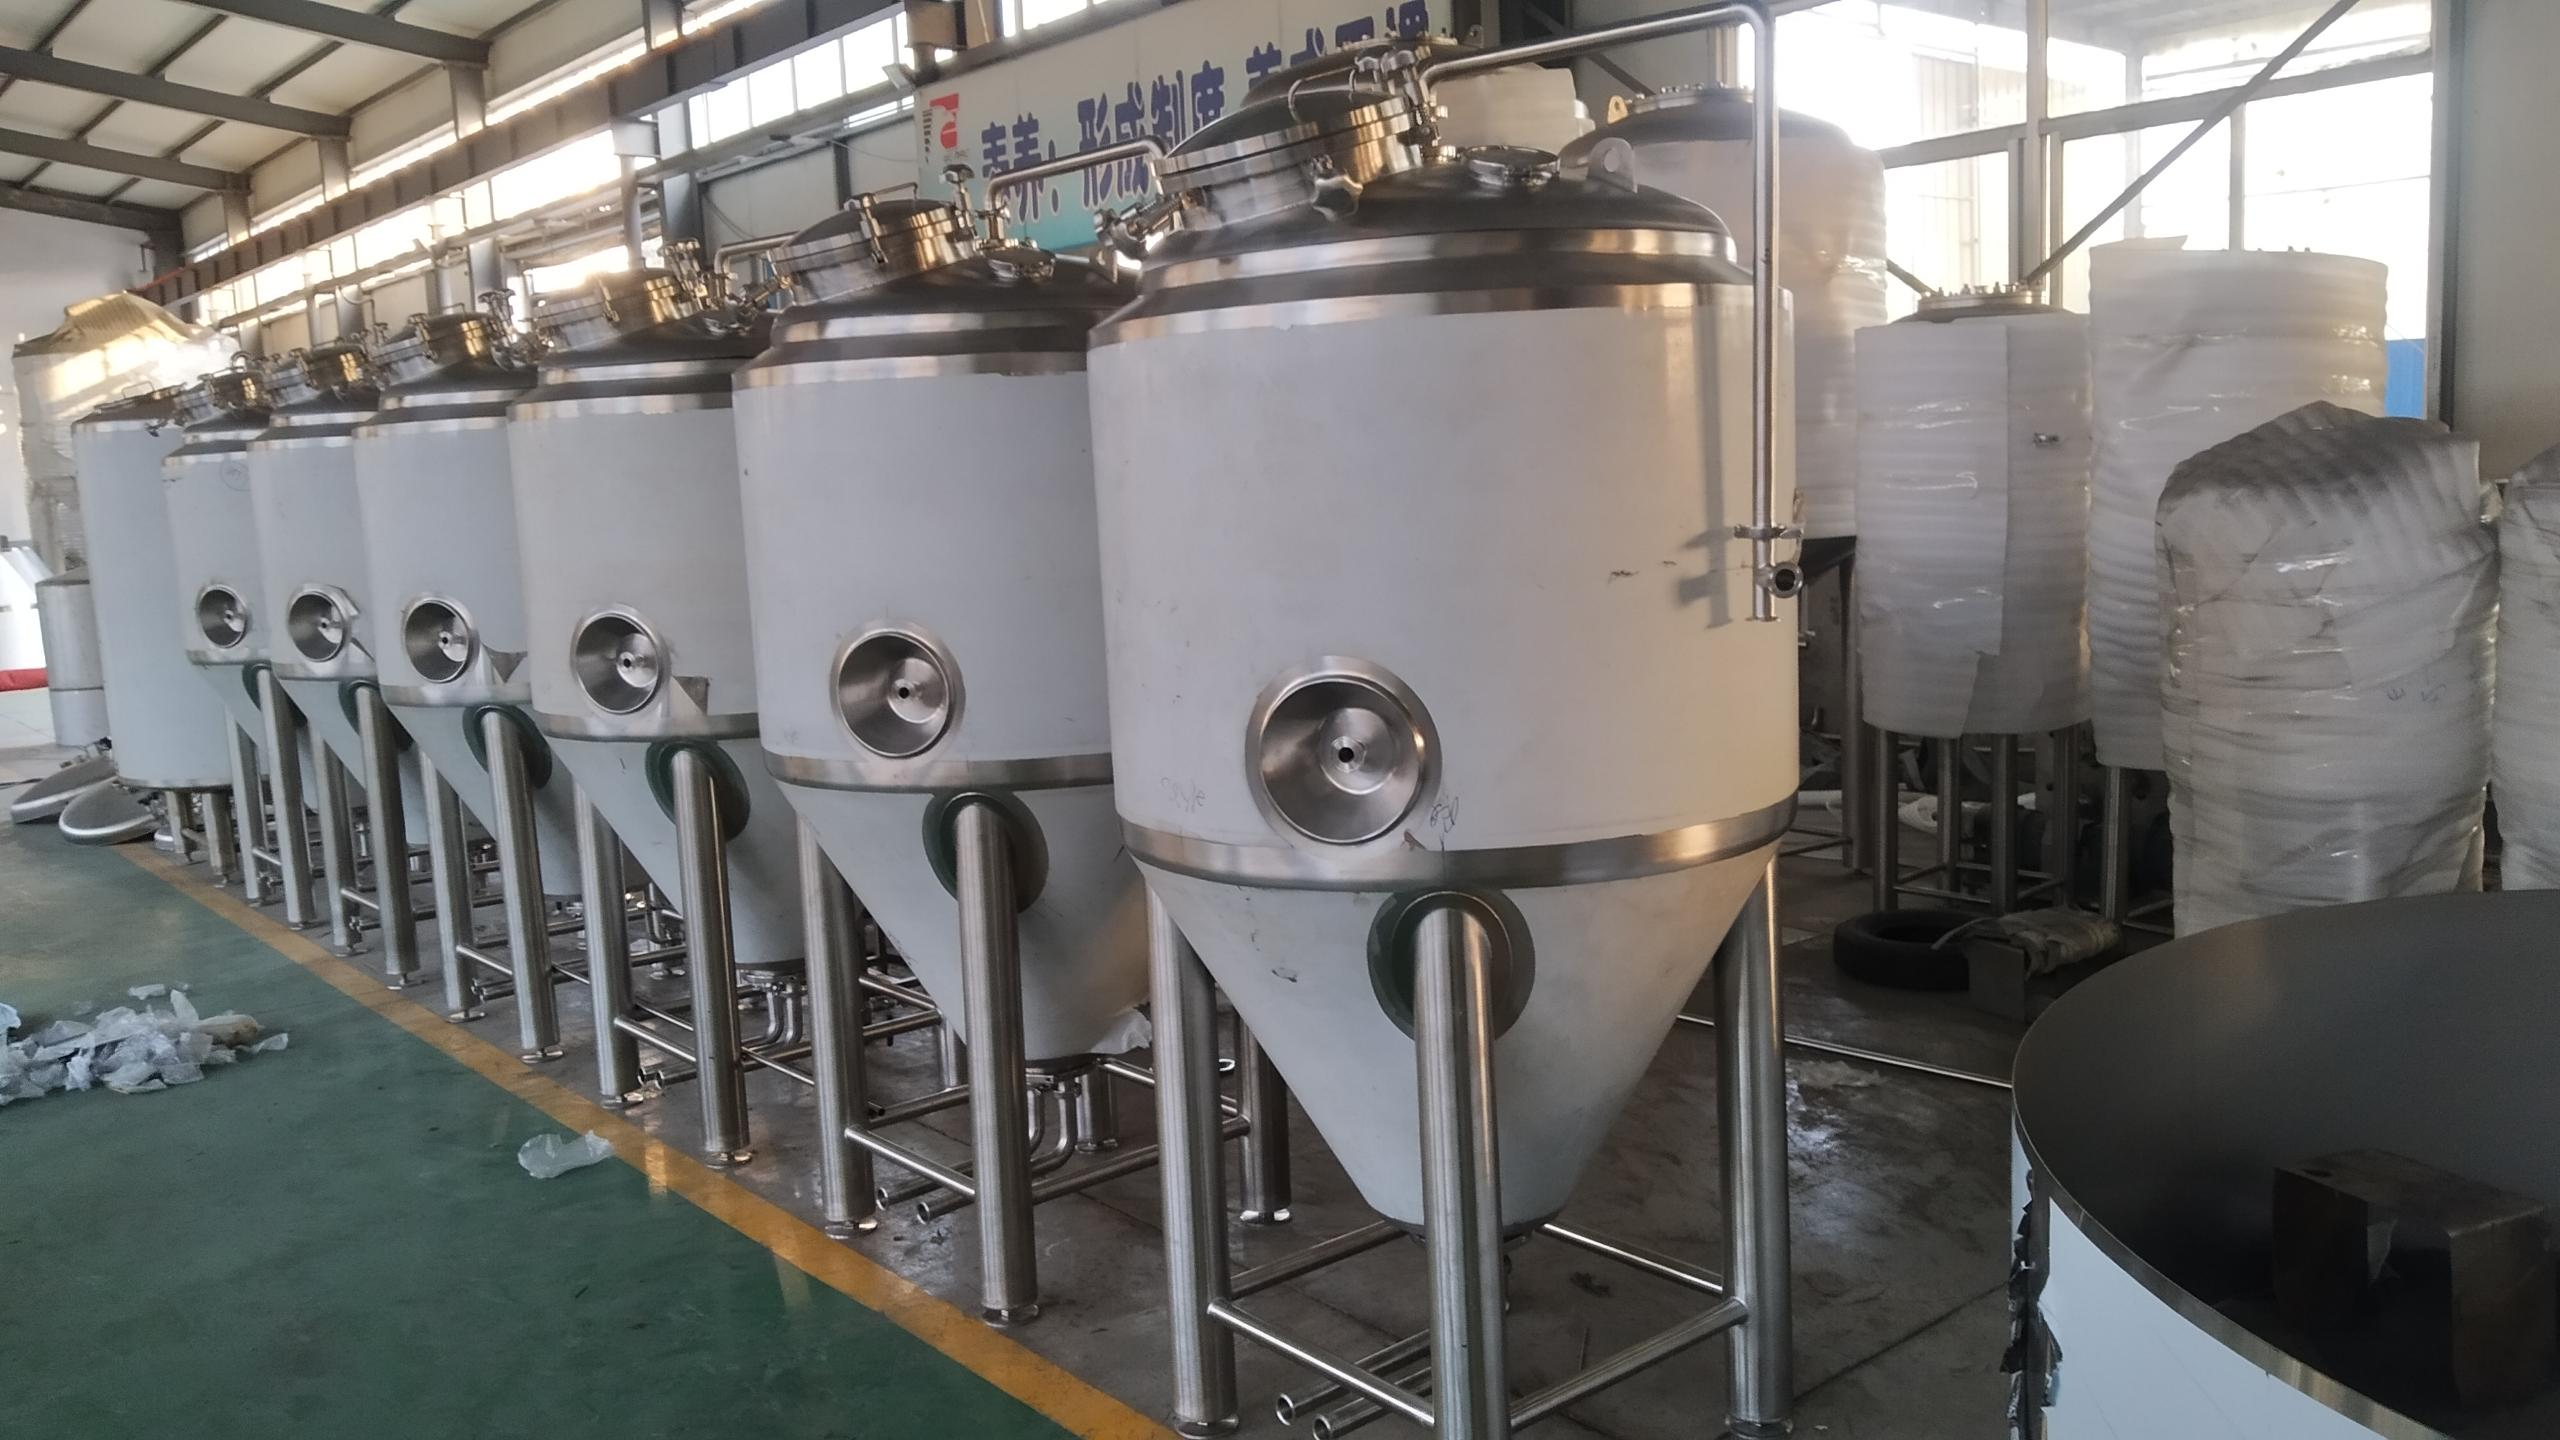 Craft beer at 2 vessels brewhouse &mash system hot sell in USA